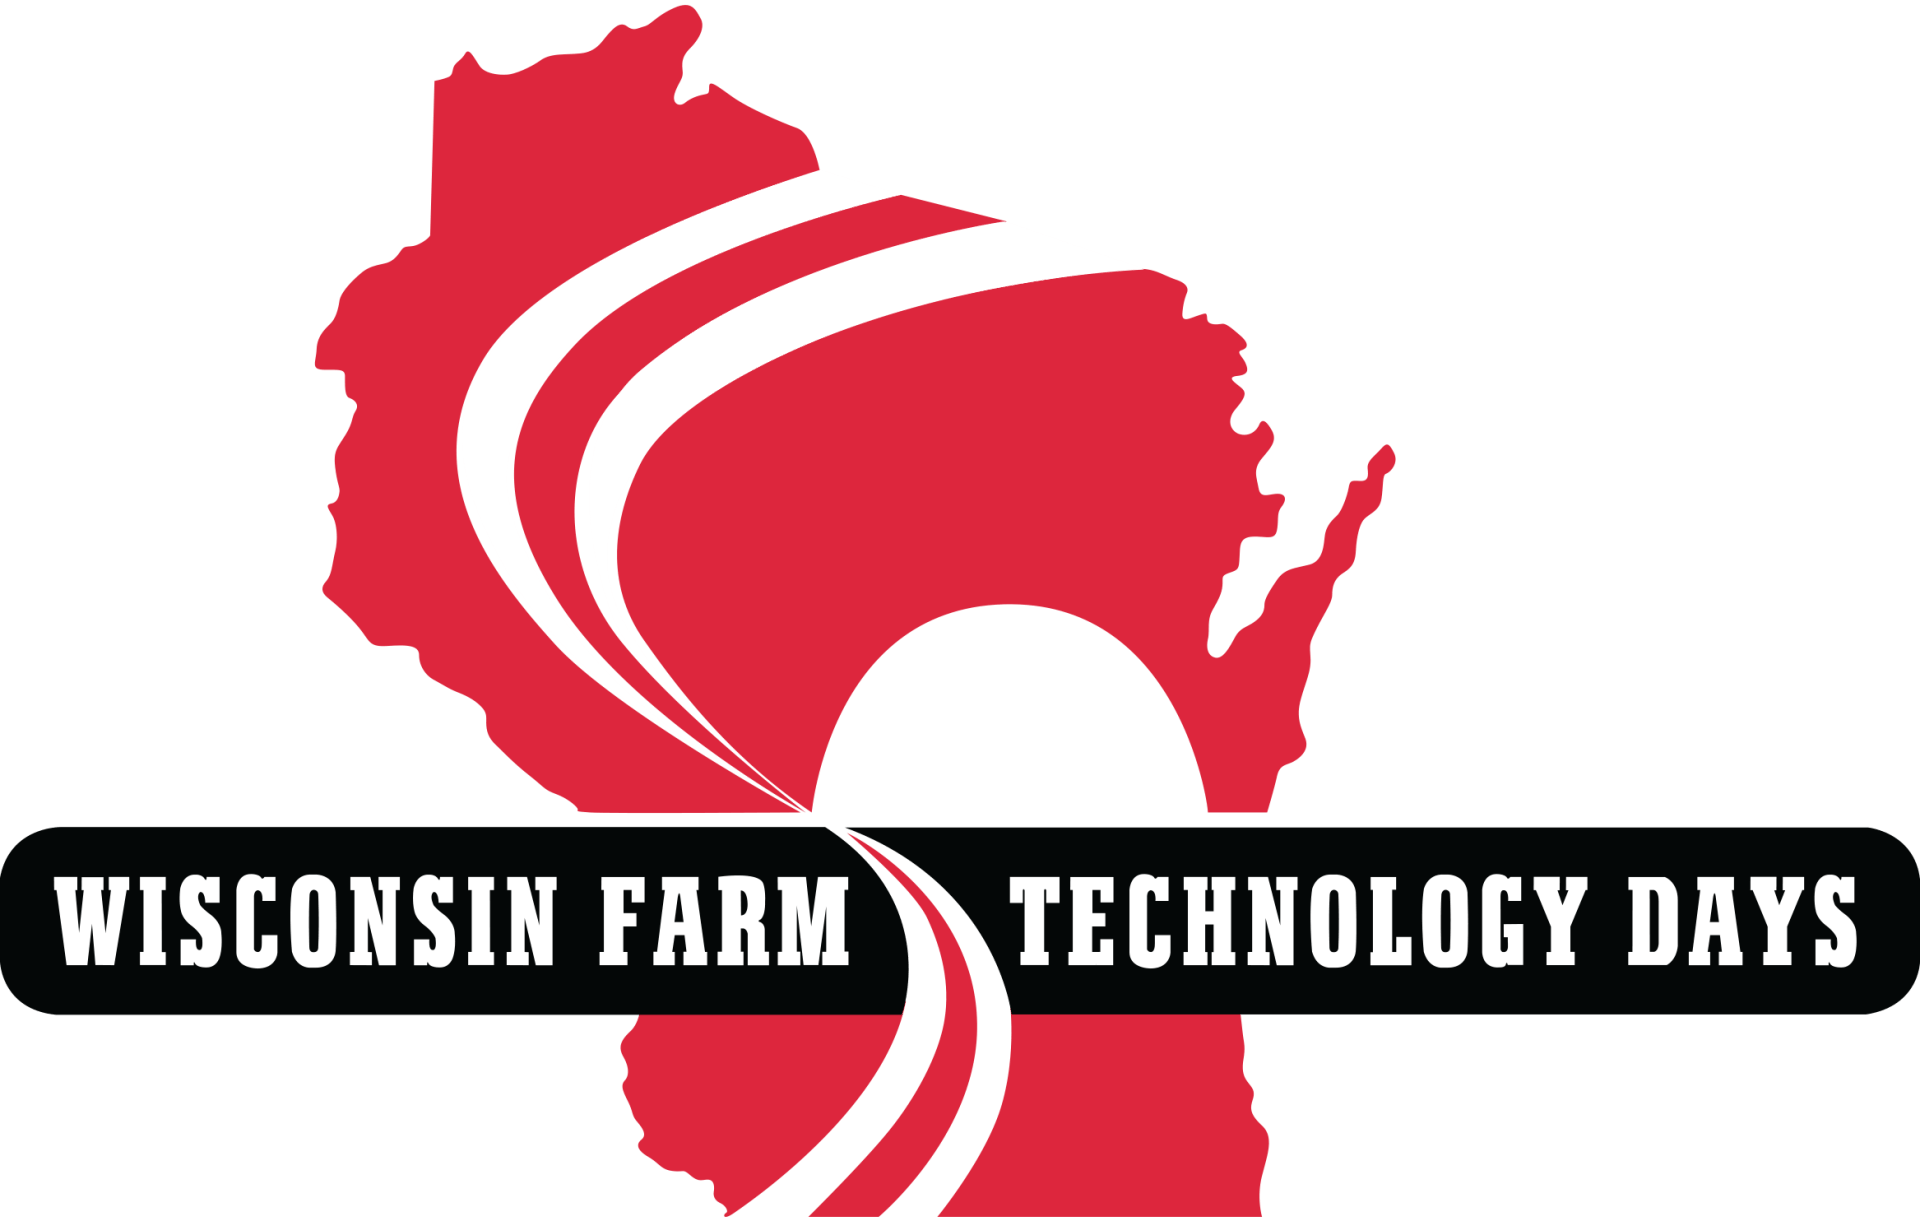 Wisconsin Farm Technology Days / WFTD / Start Planning Your Visit Now!